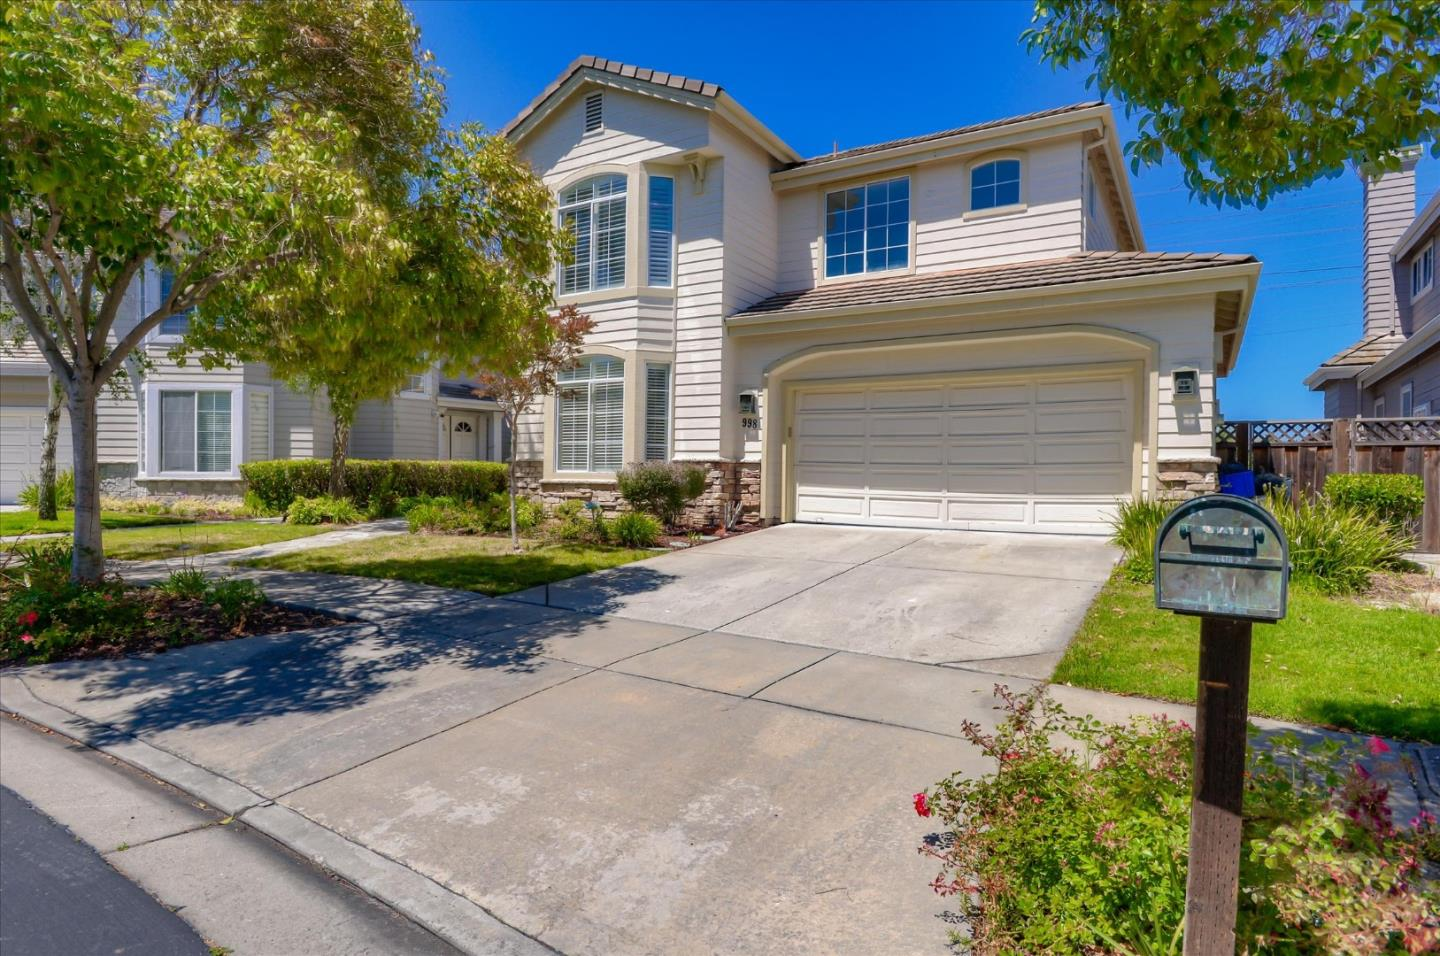 Nestled within the prestigious and highly sought-after community of Governors Bay, this is a luxurious residence that you will be proud to call your own. Private & peaceful living is guaranteed with a neighboring green space at the rear of the property & uninterrupted views over SF Bay & open marshlands. Home features a 2-story open concept living space. Open layout features a great room with kitchen, an eat-in dining area & a family room with fireplace. No neighbors will disturb your privacy as you wine & dine with an open Eastern facing views. Step through the patio doors to the backyard where you can entertain guests. Gardens are easy-care & established. Plenty of room to cook on the grill or unwind with your morning coffee. 5 bdrms & 3 full baths service the home including a main-floor bedroom & full bath, ideal for use as guest accommodation or as an in-law suite. 4 light-filled bdrms are housed on the second floor with an opulent master with show-stopping views out to the Bay.